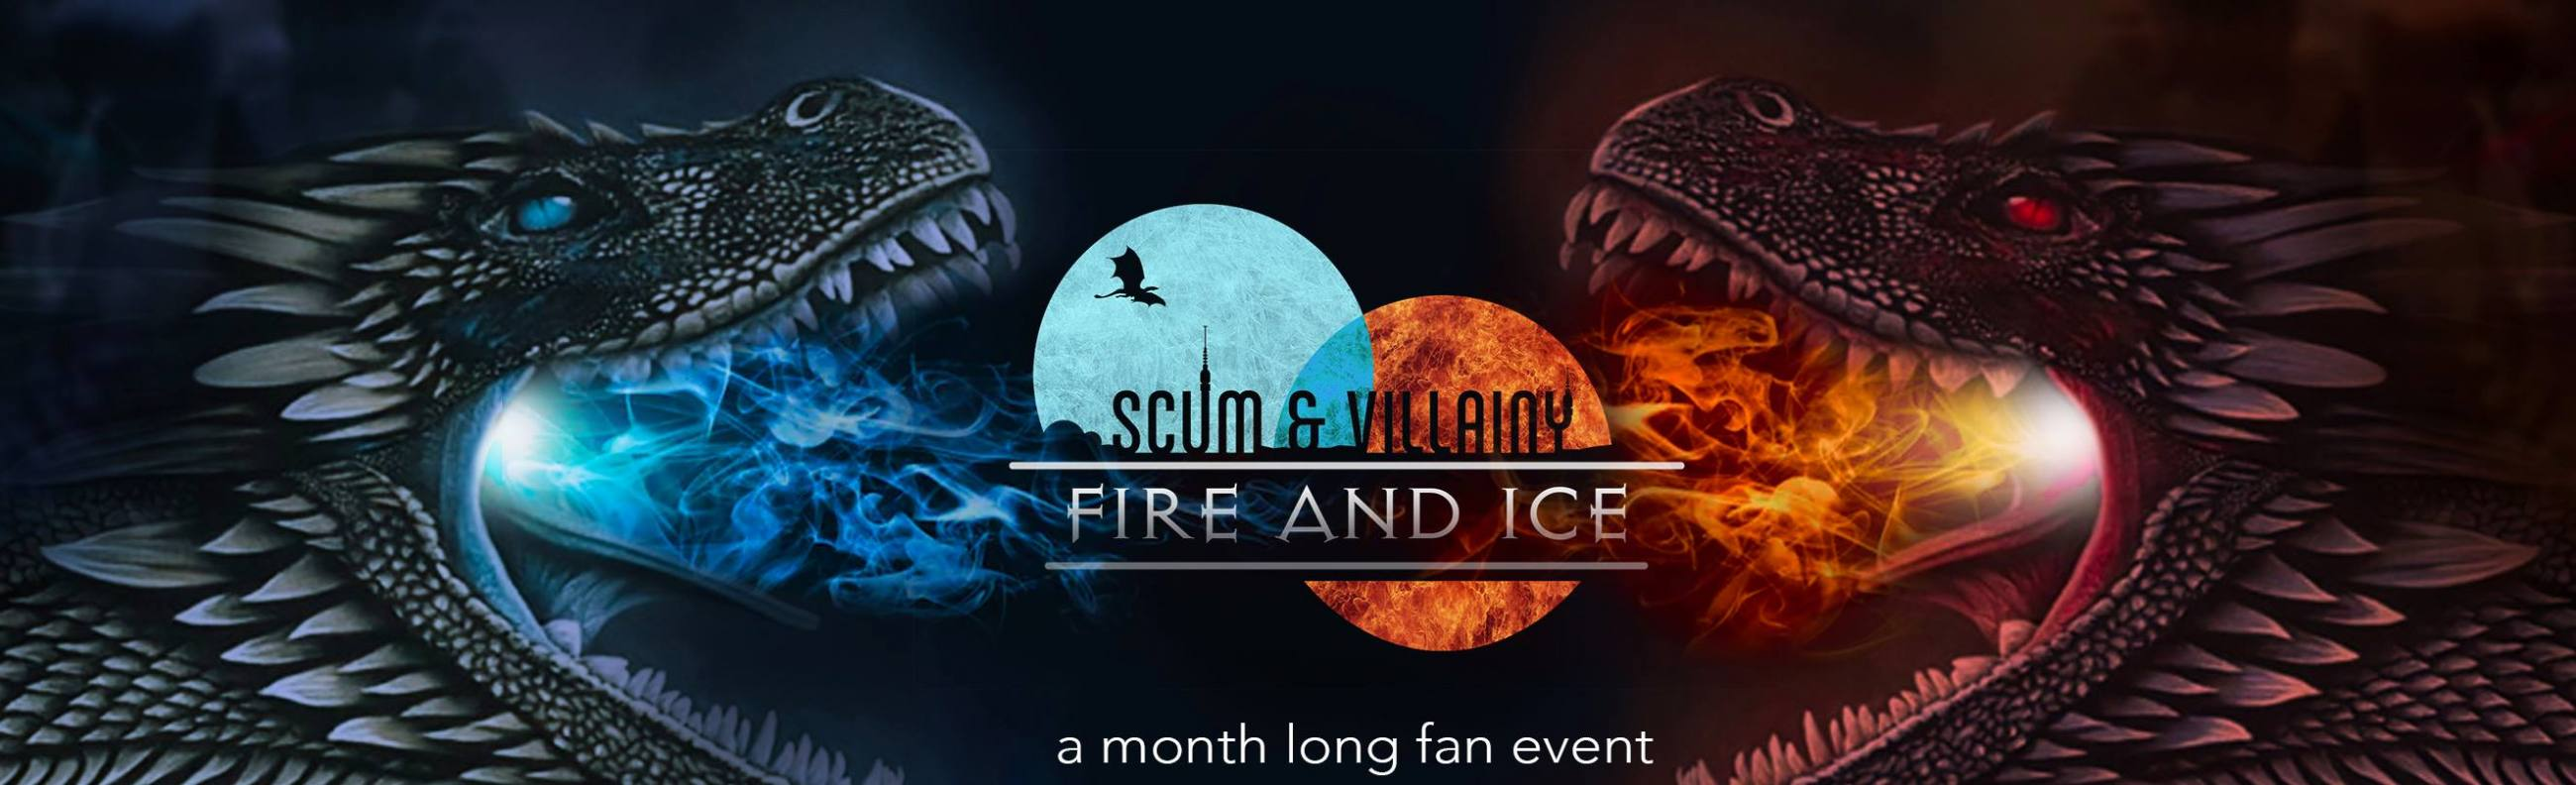 Scum & Villainy Fire and Ice